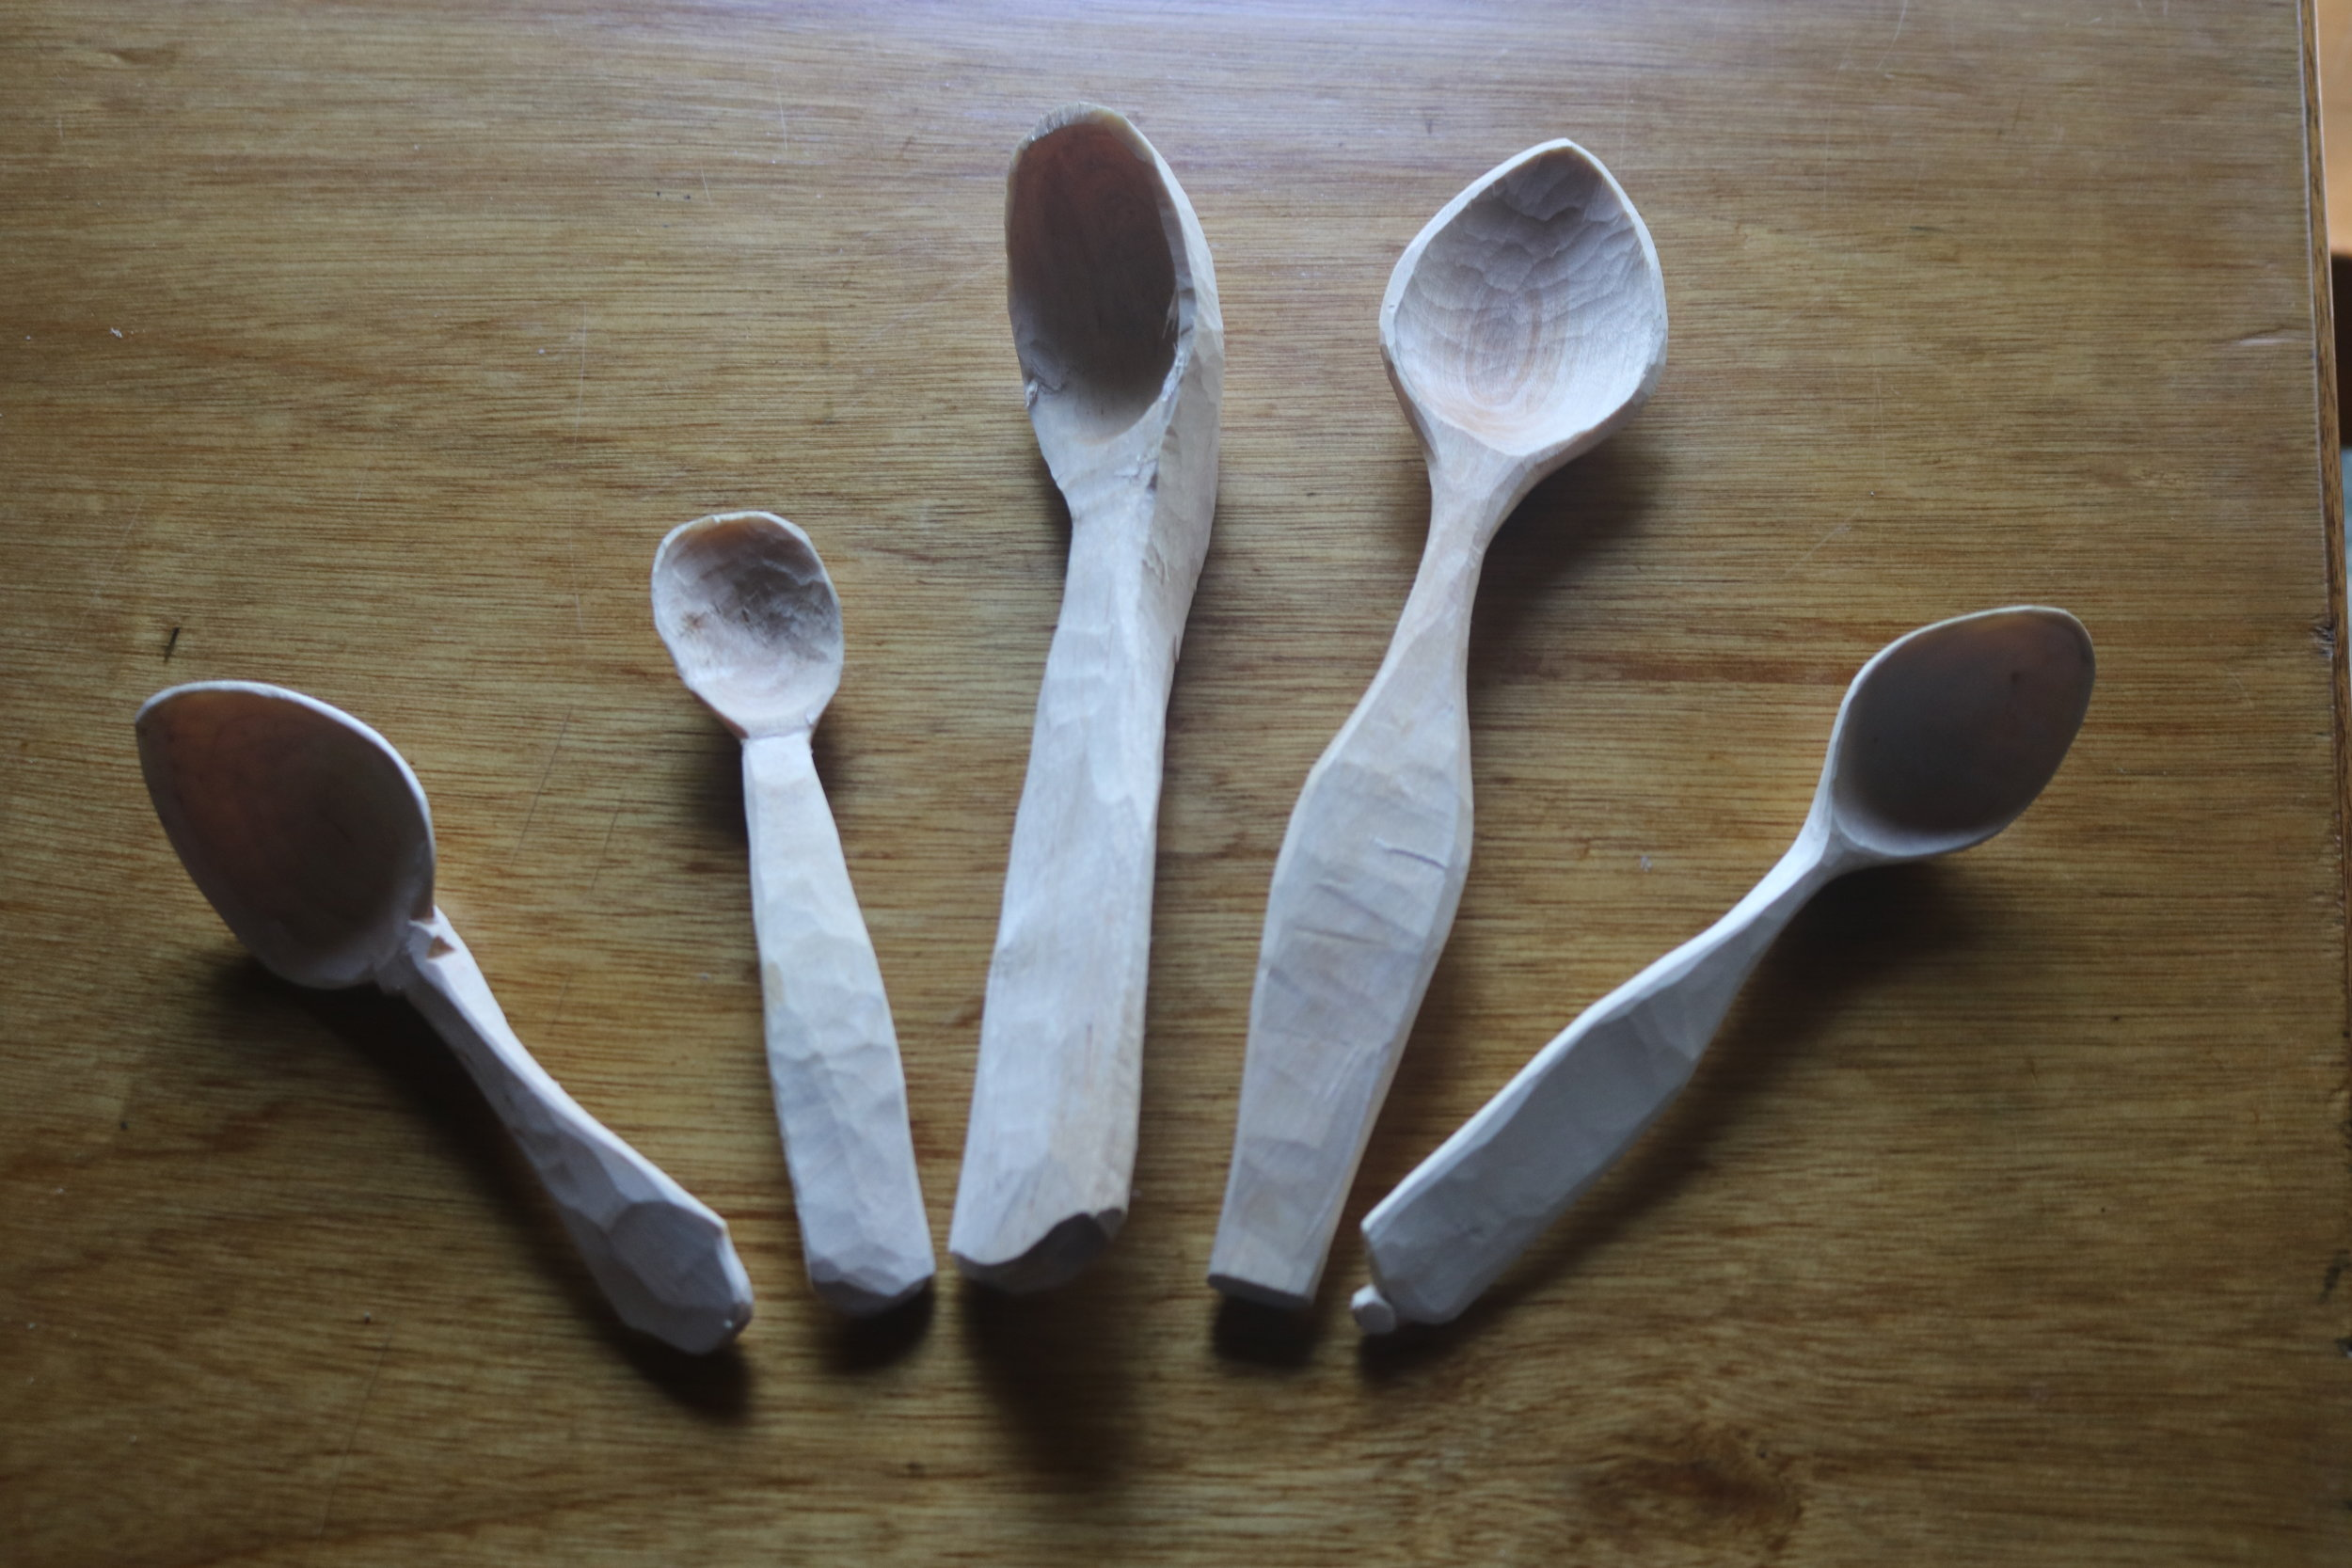 Apparently in woodworking culture you have to give away the first spoon that you carve. The campers gave us a spoon for everyone on crew, and some of them are their first ever spoons.